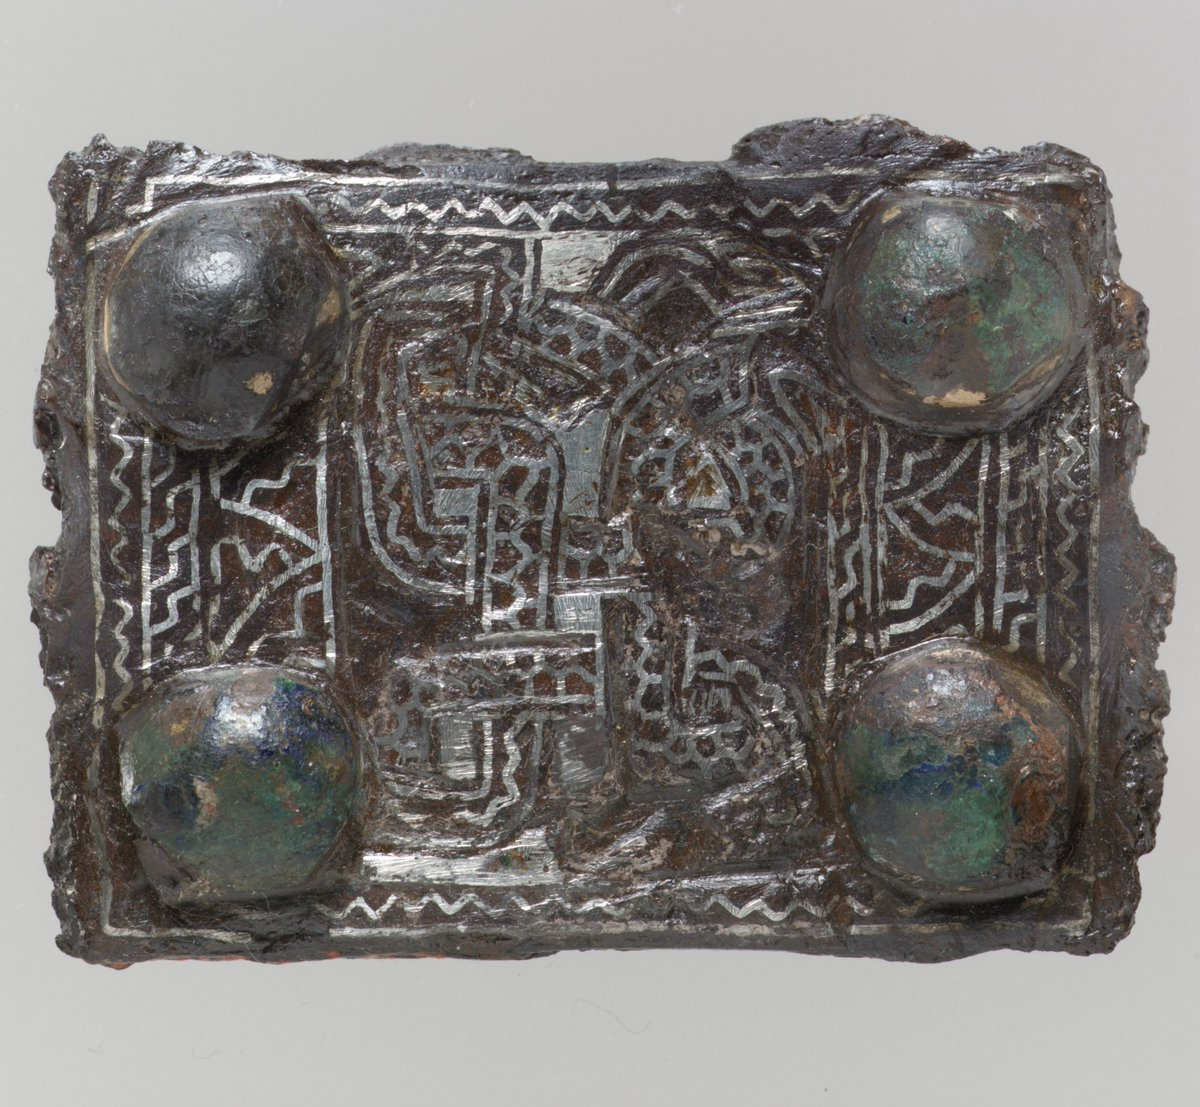 Back Plate from a Belt Buckle  #metmuseum #MedievalArt